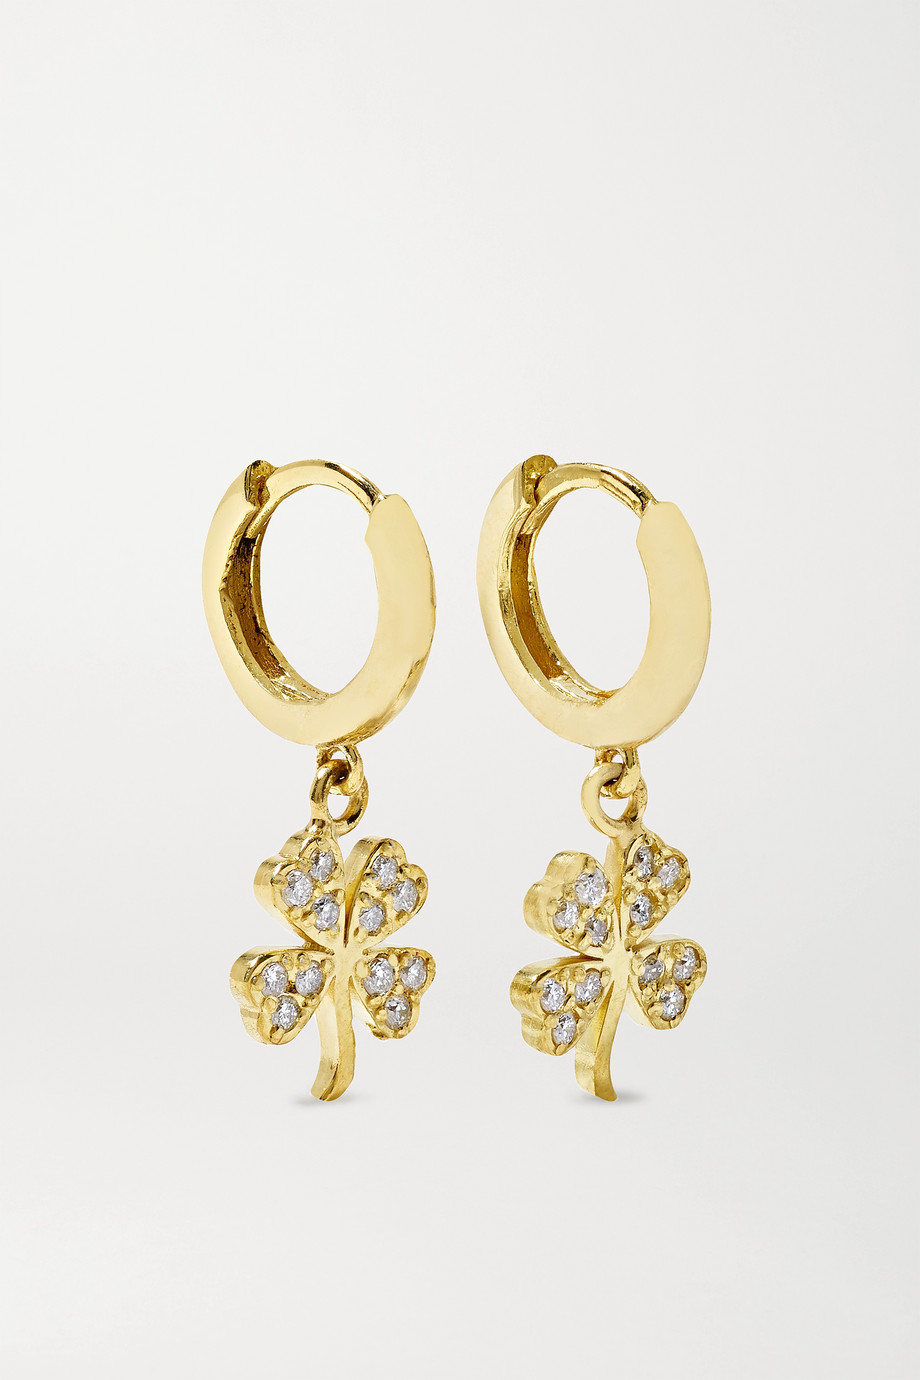 JENNIFER MEYER Mini Clover 18-karat gold diamond hoop earrings